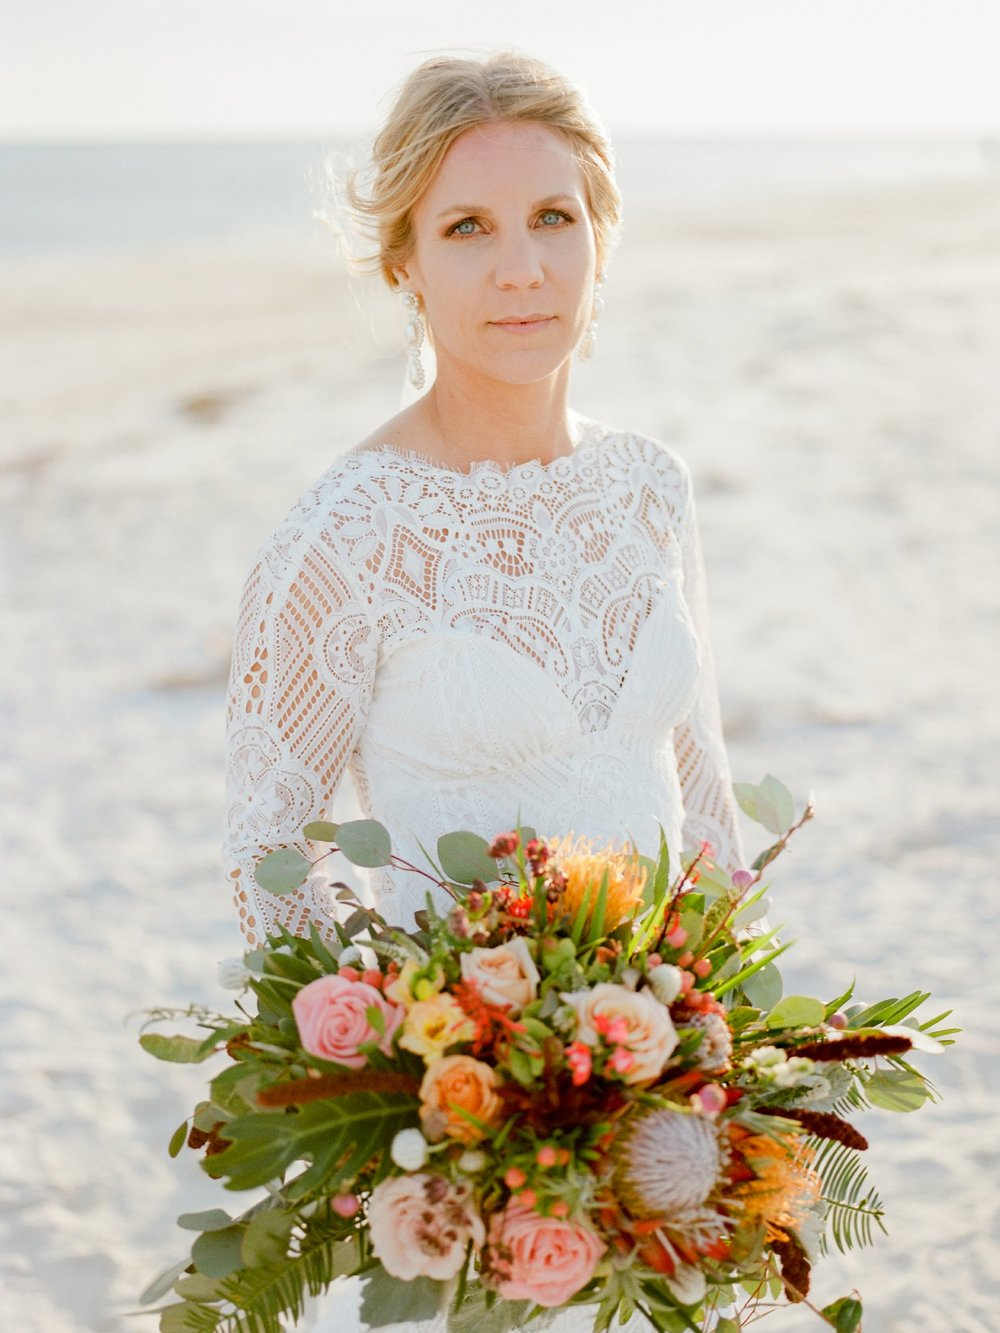 st george island wedding st george island photographer shannon griffin photography_0050.jpg